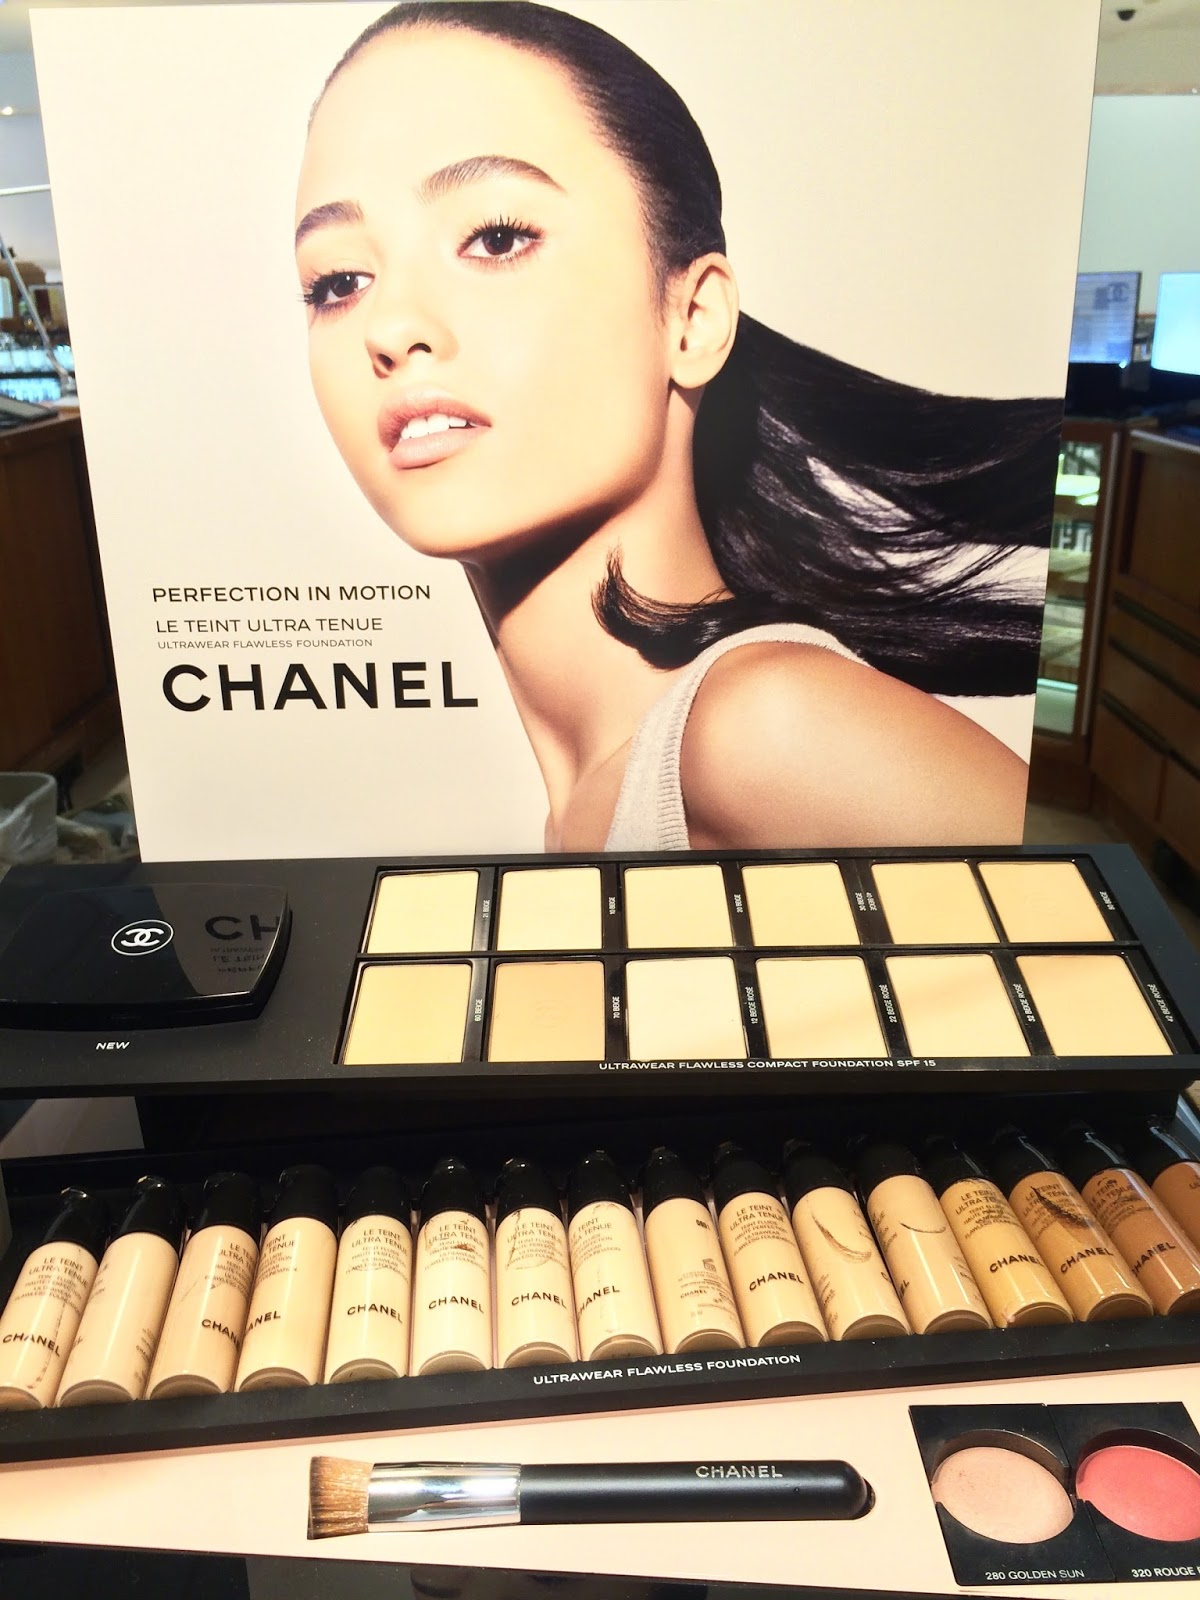 Chanel Le Teint Ultra Tenue Ultrawear Flawless Foundation Swatches & Review